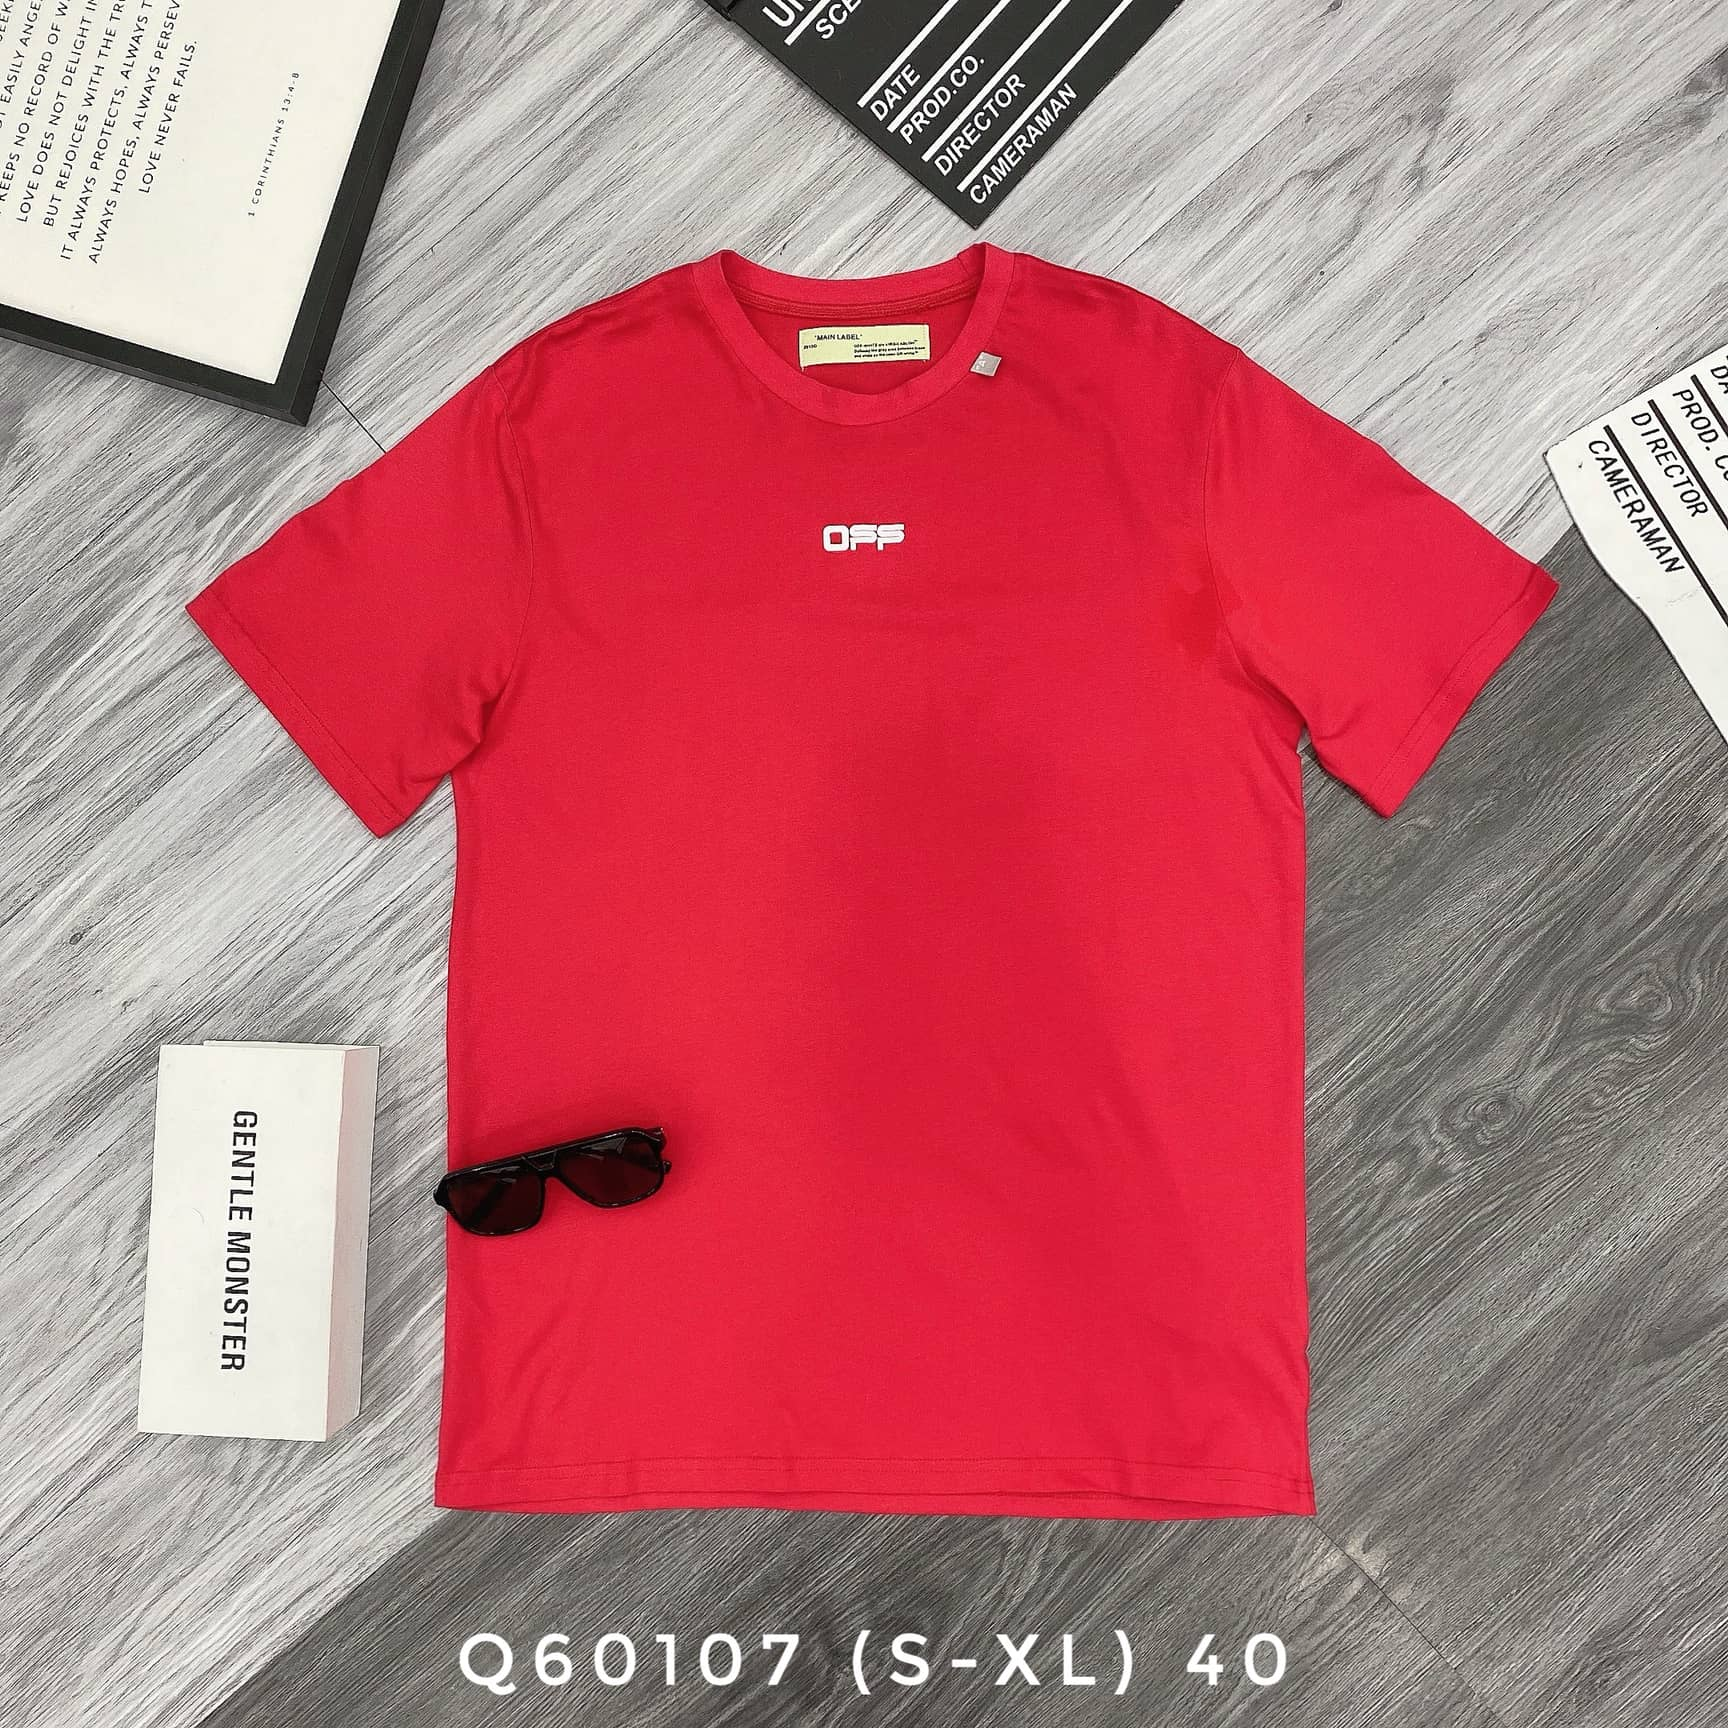 at-co-tron-q60107-s-xl